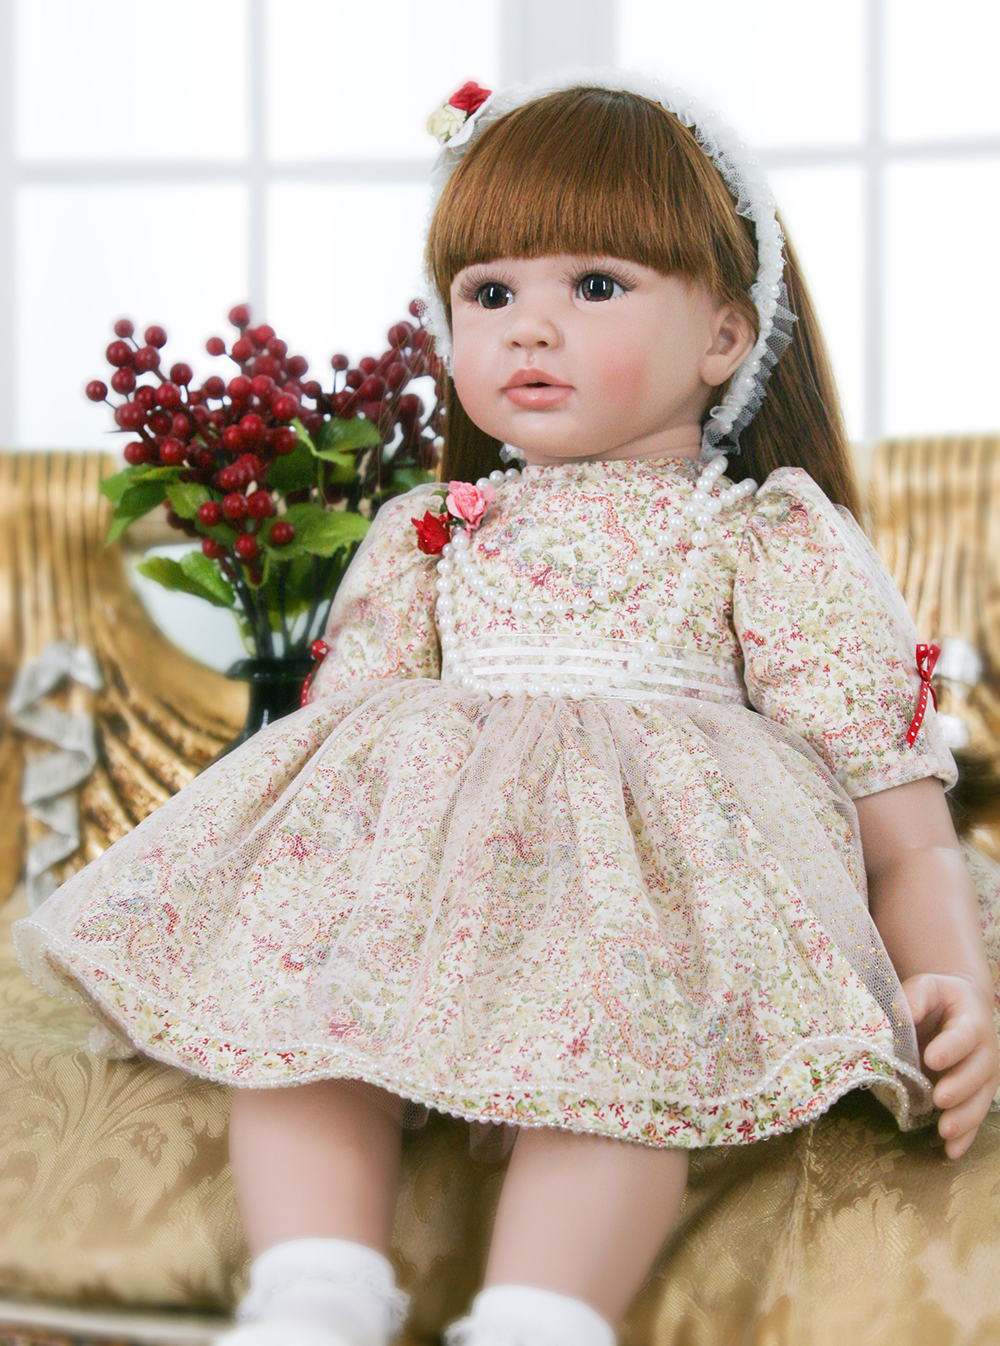 Pursue 24/60 cm Adora Doll Reborn Silicone Lifelike Baby Toddler Dolls Toys for Children bebe reborn menina de silicone menina pursue blue eyes princess reborn 55cm silicone baby dolls adora doll for girls kids bebe reborn menina de silicone reborn babies